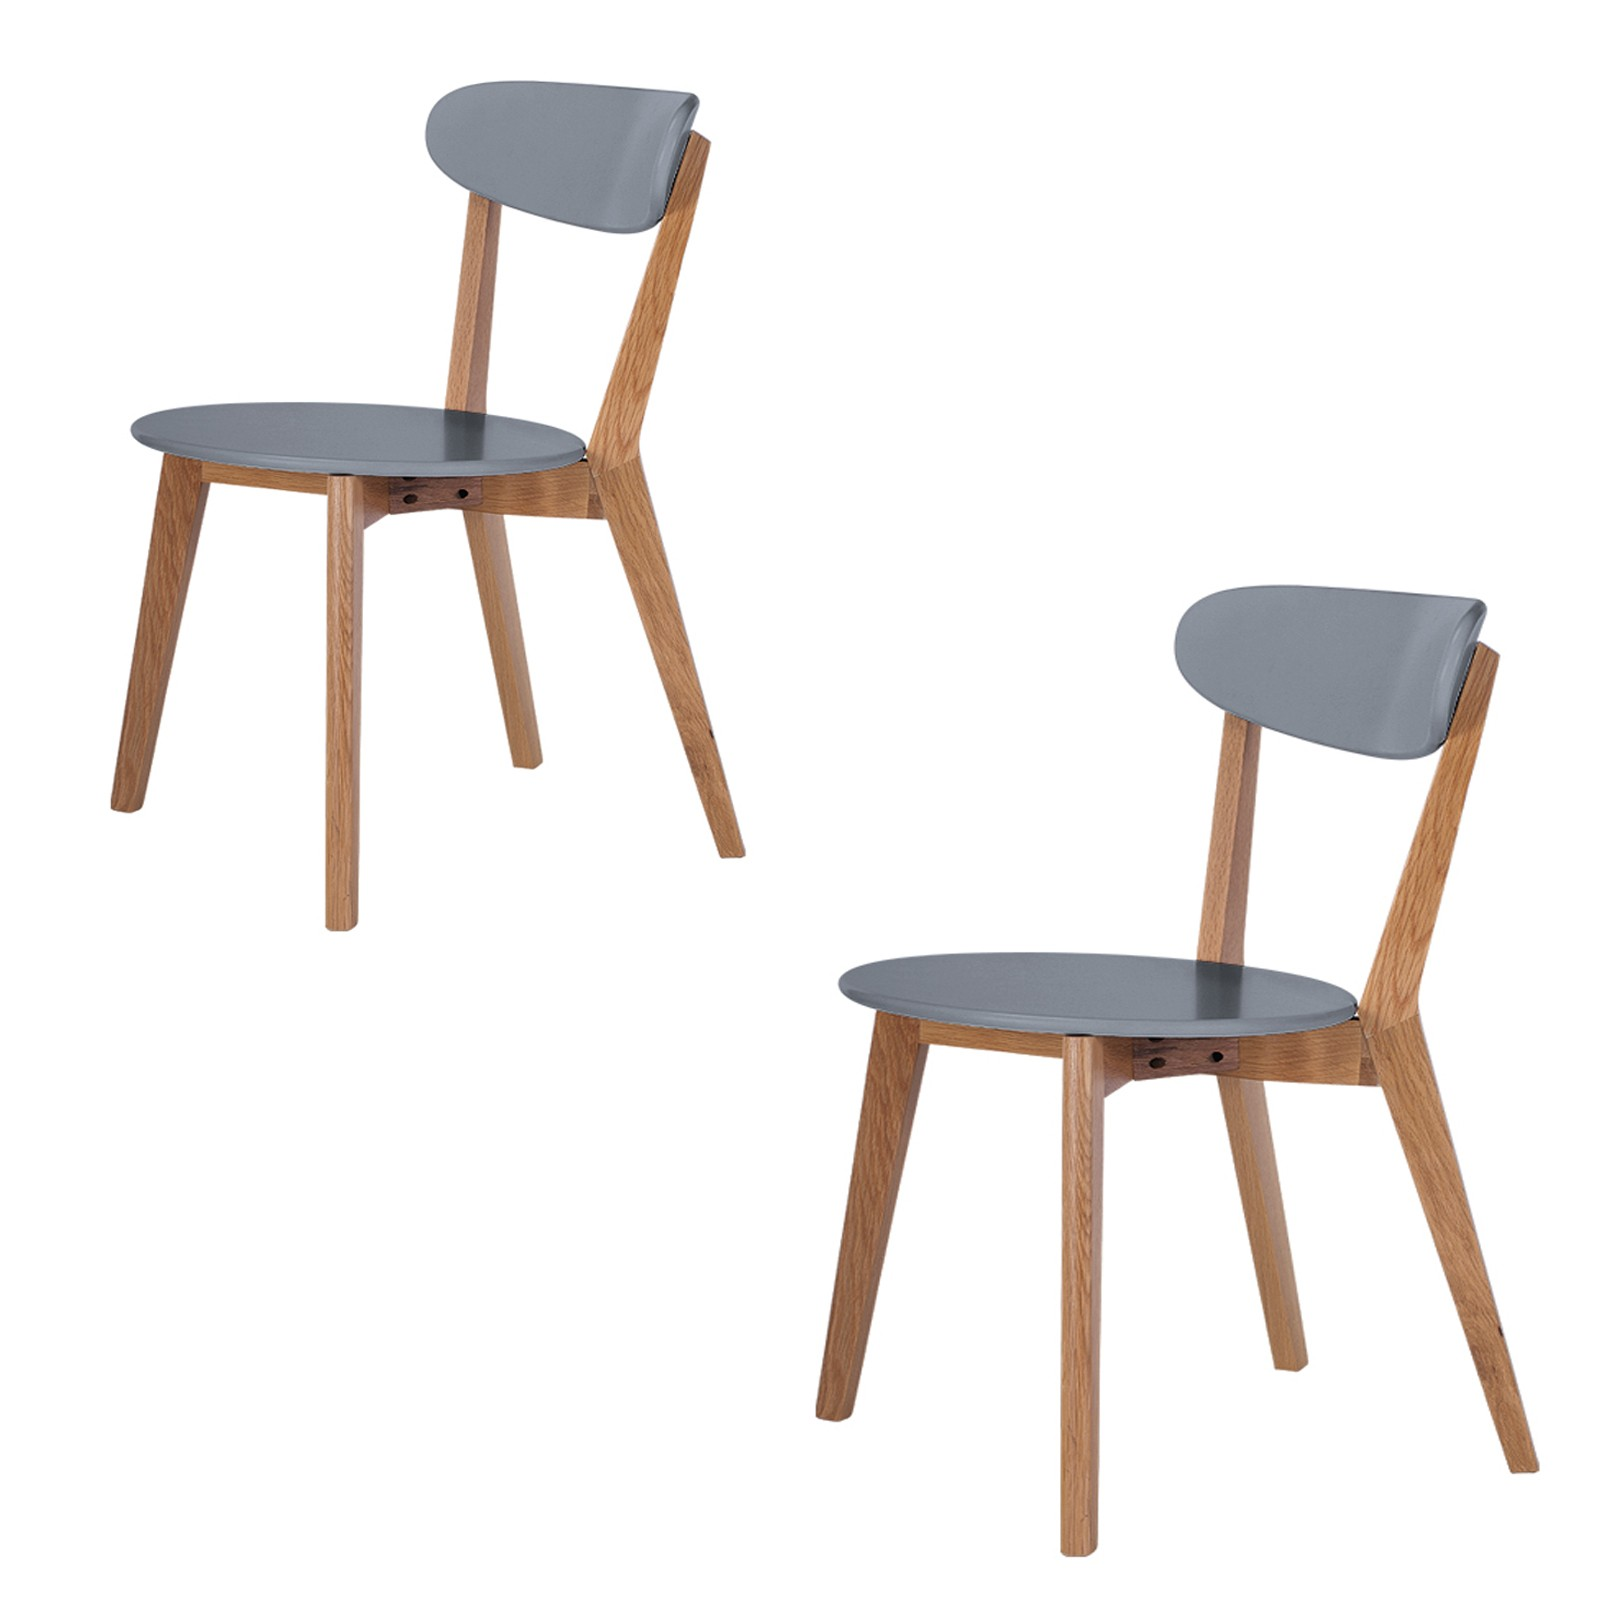 Scandinavian style dining chairs abreo home furniture for Swedish style dining chairs